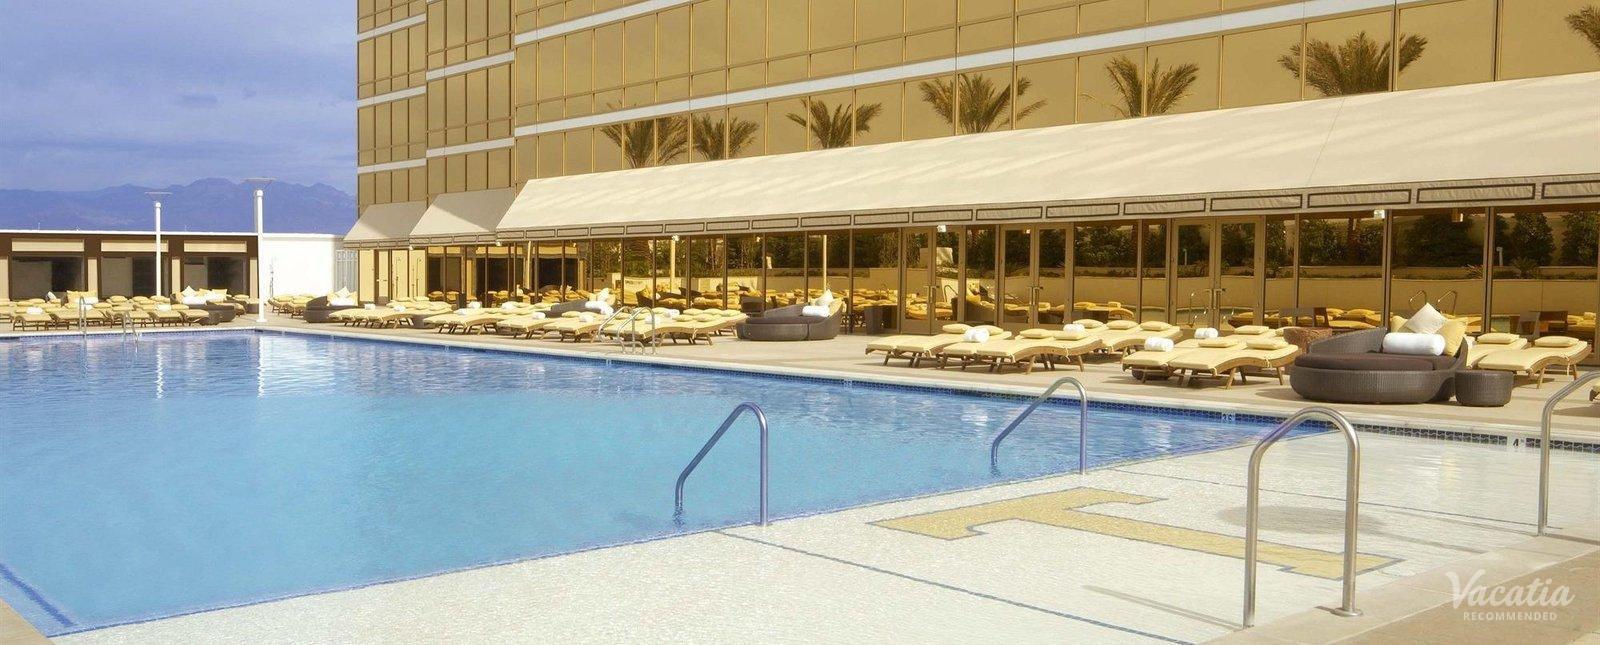 Trump International Hotel Las Vegas Pool